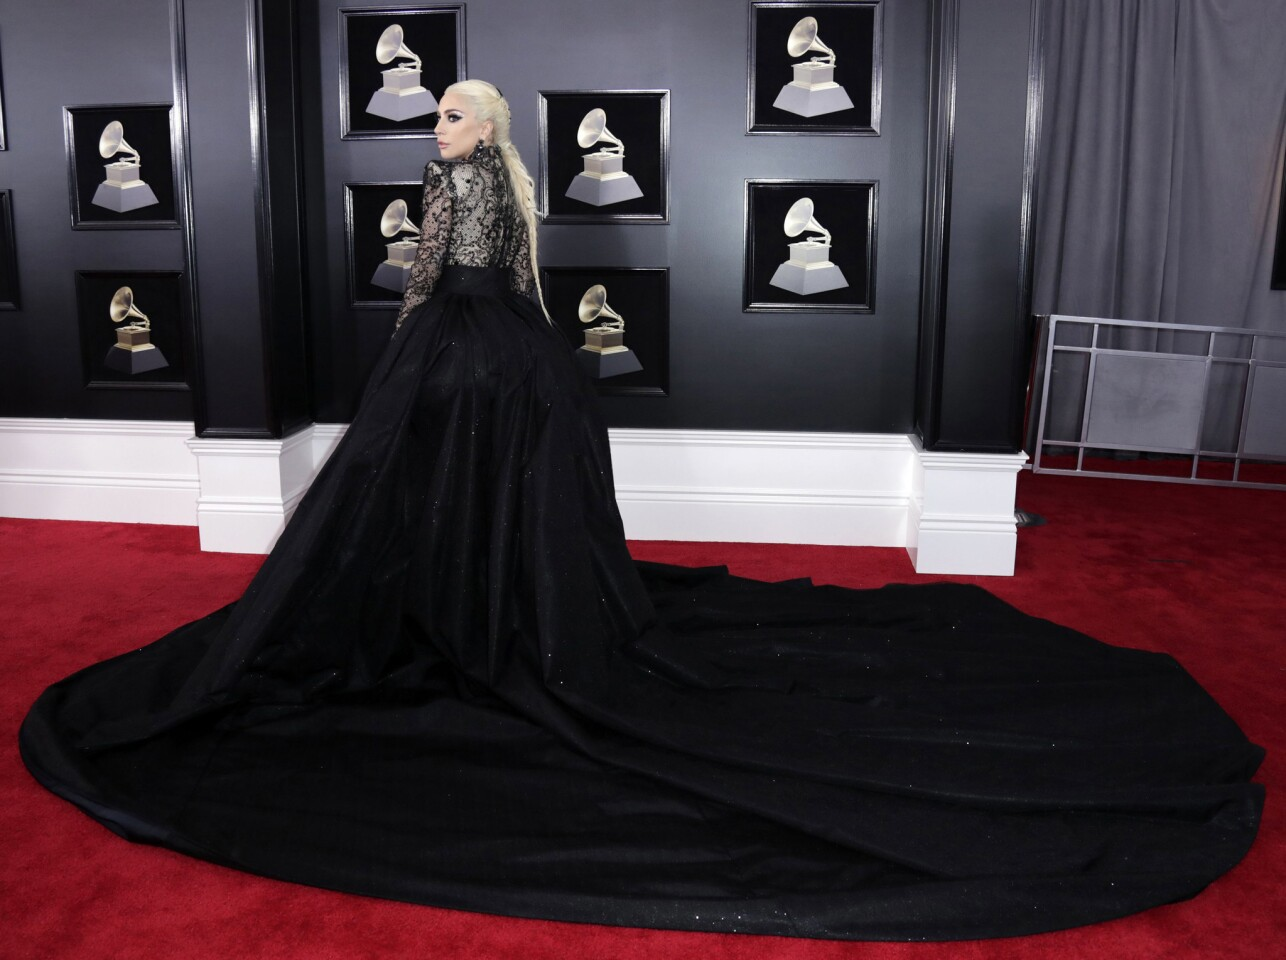 Lady Gaga cut a dramatic figure in a custom Armani Privé high-necked lace bodysuit and a billowy detachable skirt, complete with train and high-leg slit. The performer and nominee topped off the dramatic look with Lorraine Schwartz chandelier earrings embellished with more than 300 carats of black diamonds.